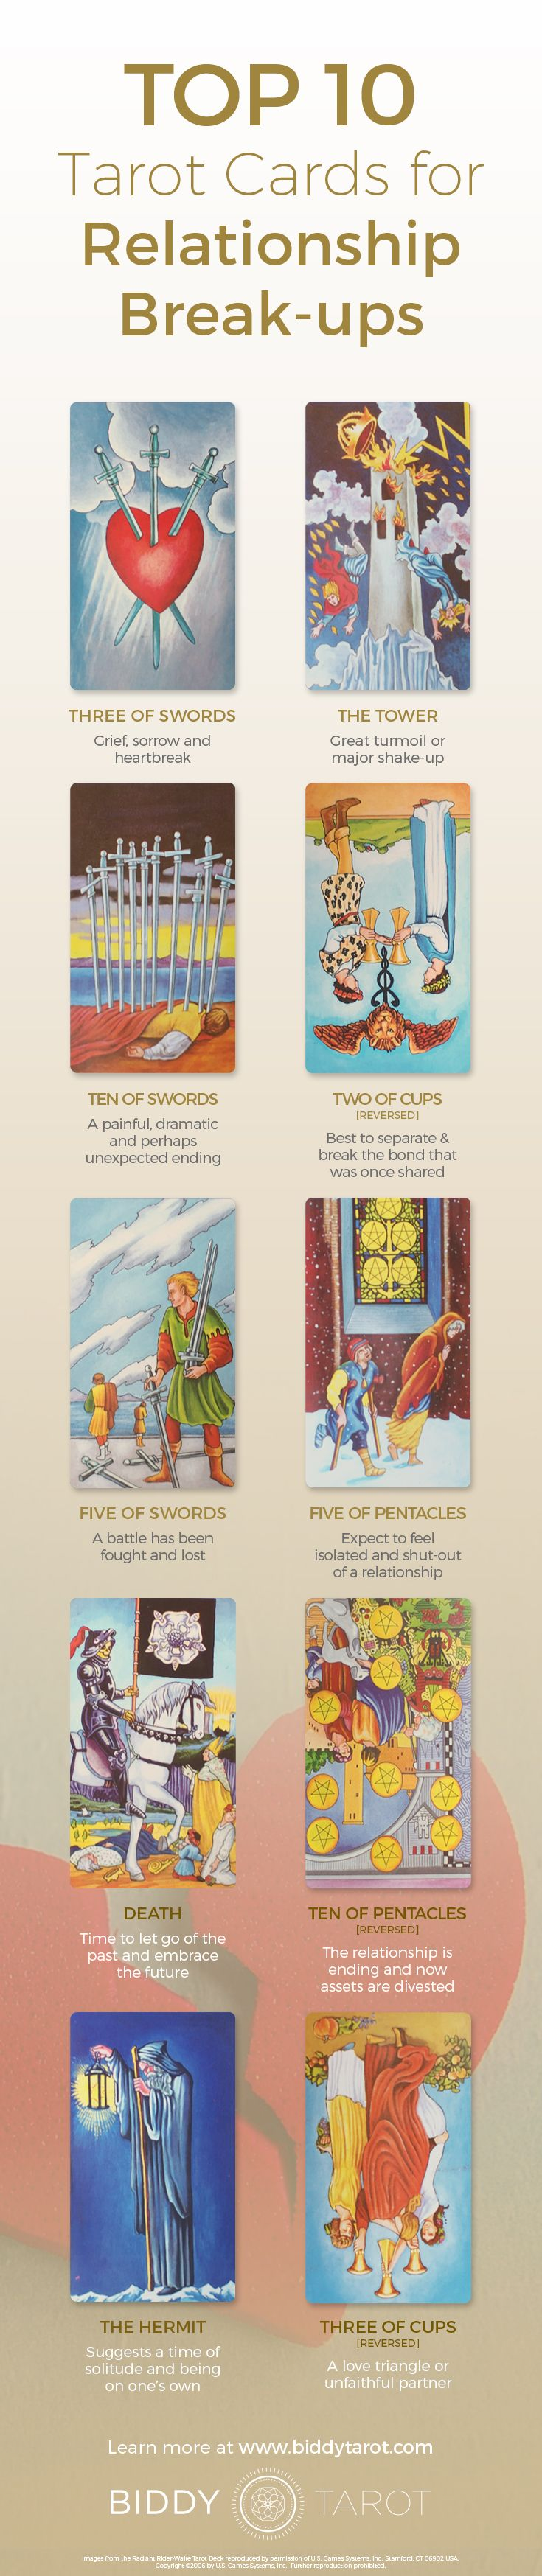 Sometimes it's best to call it quits. When these #Tarot cards appear in a #relationship reading, it's time to consider saying #good-bye and moving on. Download your free copy of my Top 10 Tarot Cards for love, finances, career, life purpose and so much more at https://www.biddytarot.com/top-ten-cards-ebook/ It's my gift to you!